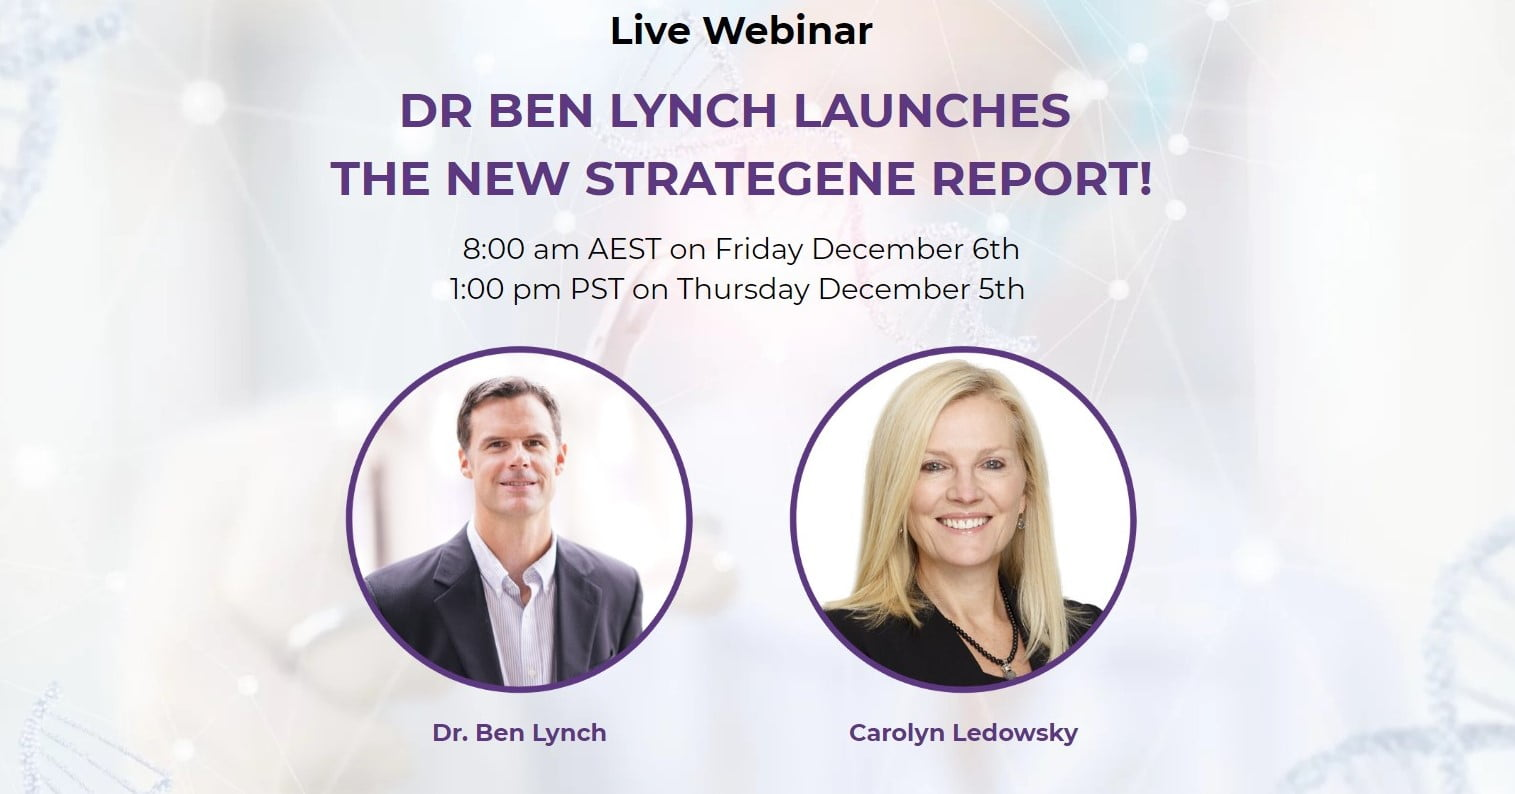 DR BEN LYNCH LAUNCHES   THE NEW STRATEGENE REPORT!